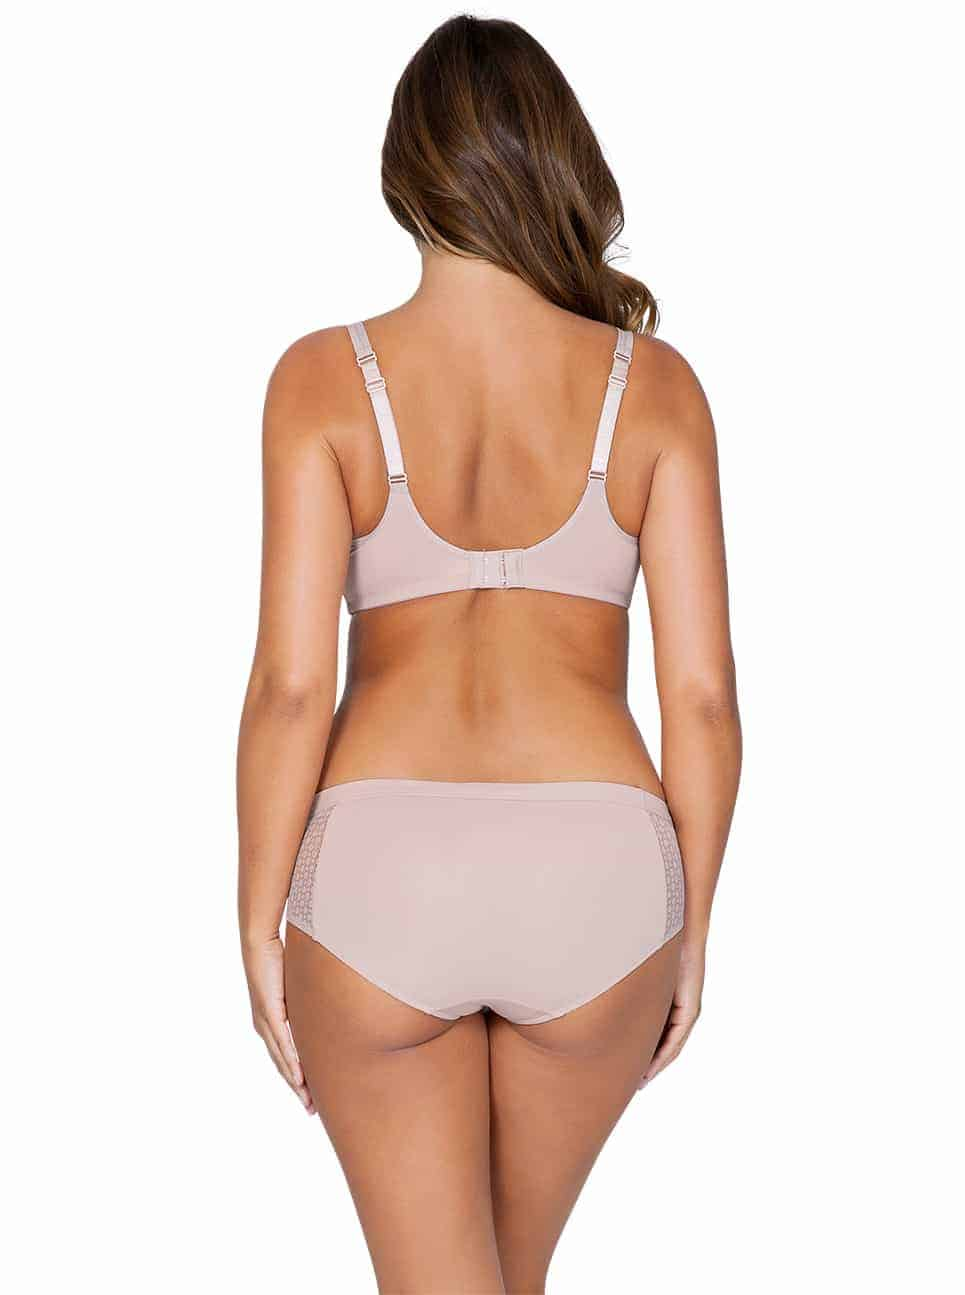 WendyP5412 UnlinedWire P5415 HipsterNudeBack copy 2 - Wendy Hipster – Victorian Rose – P5415